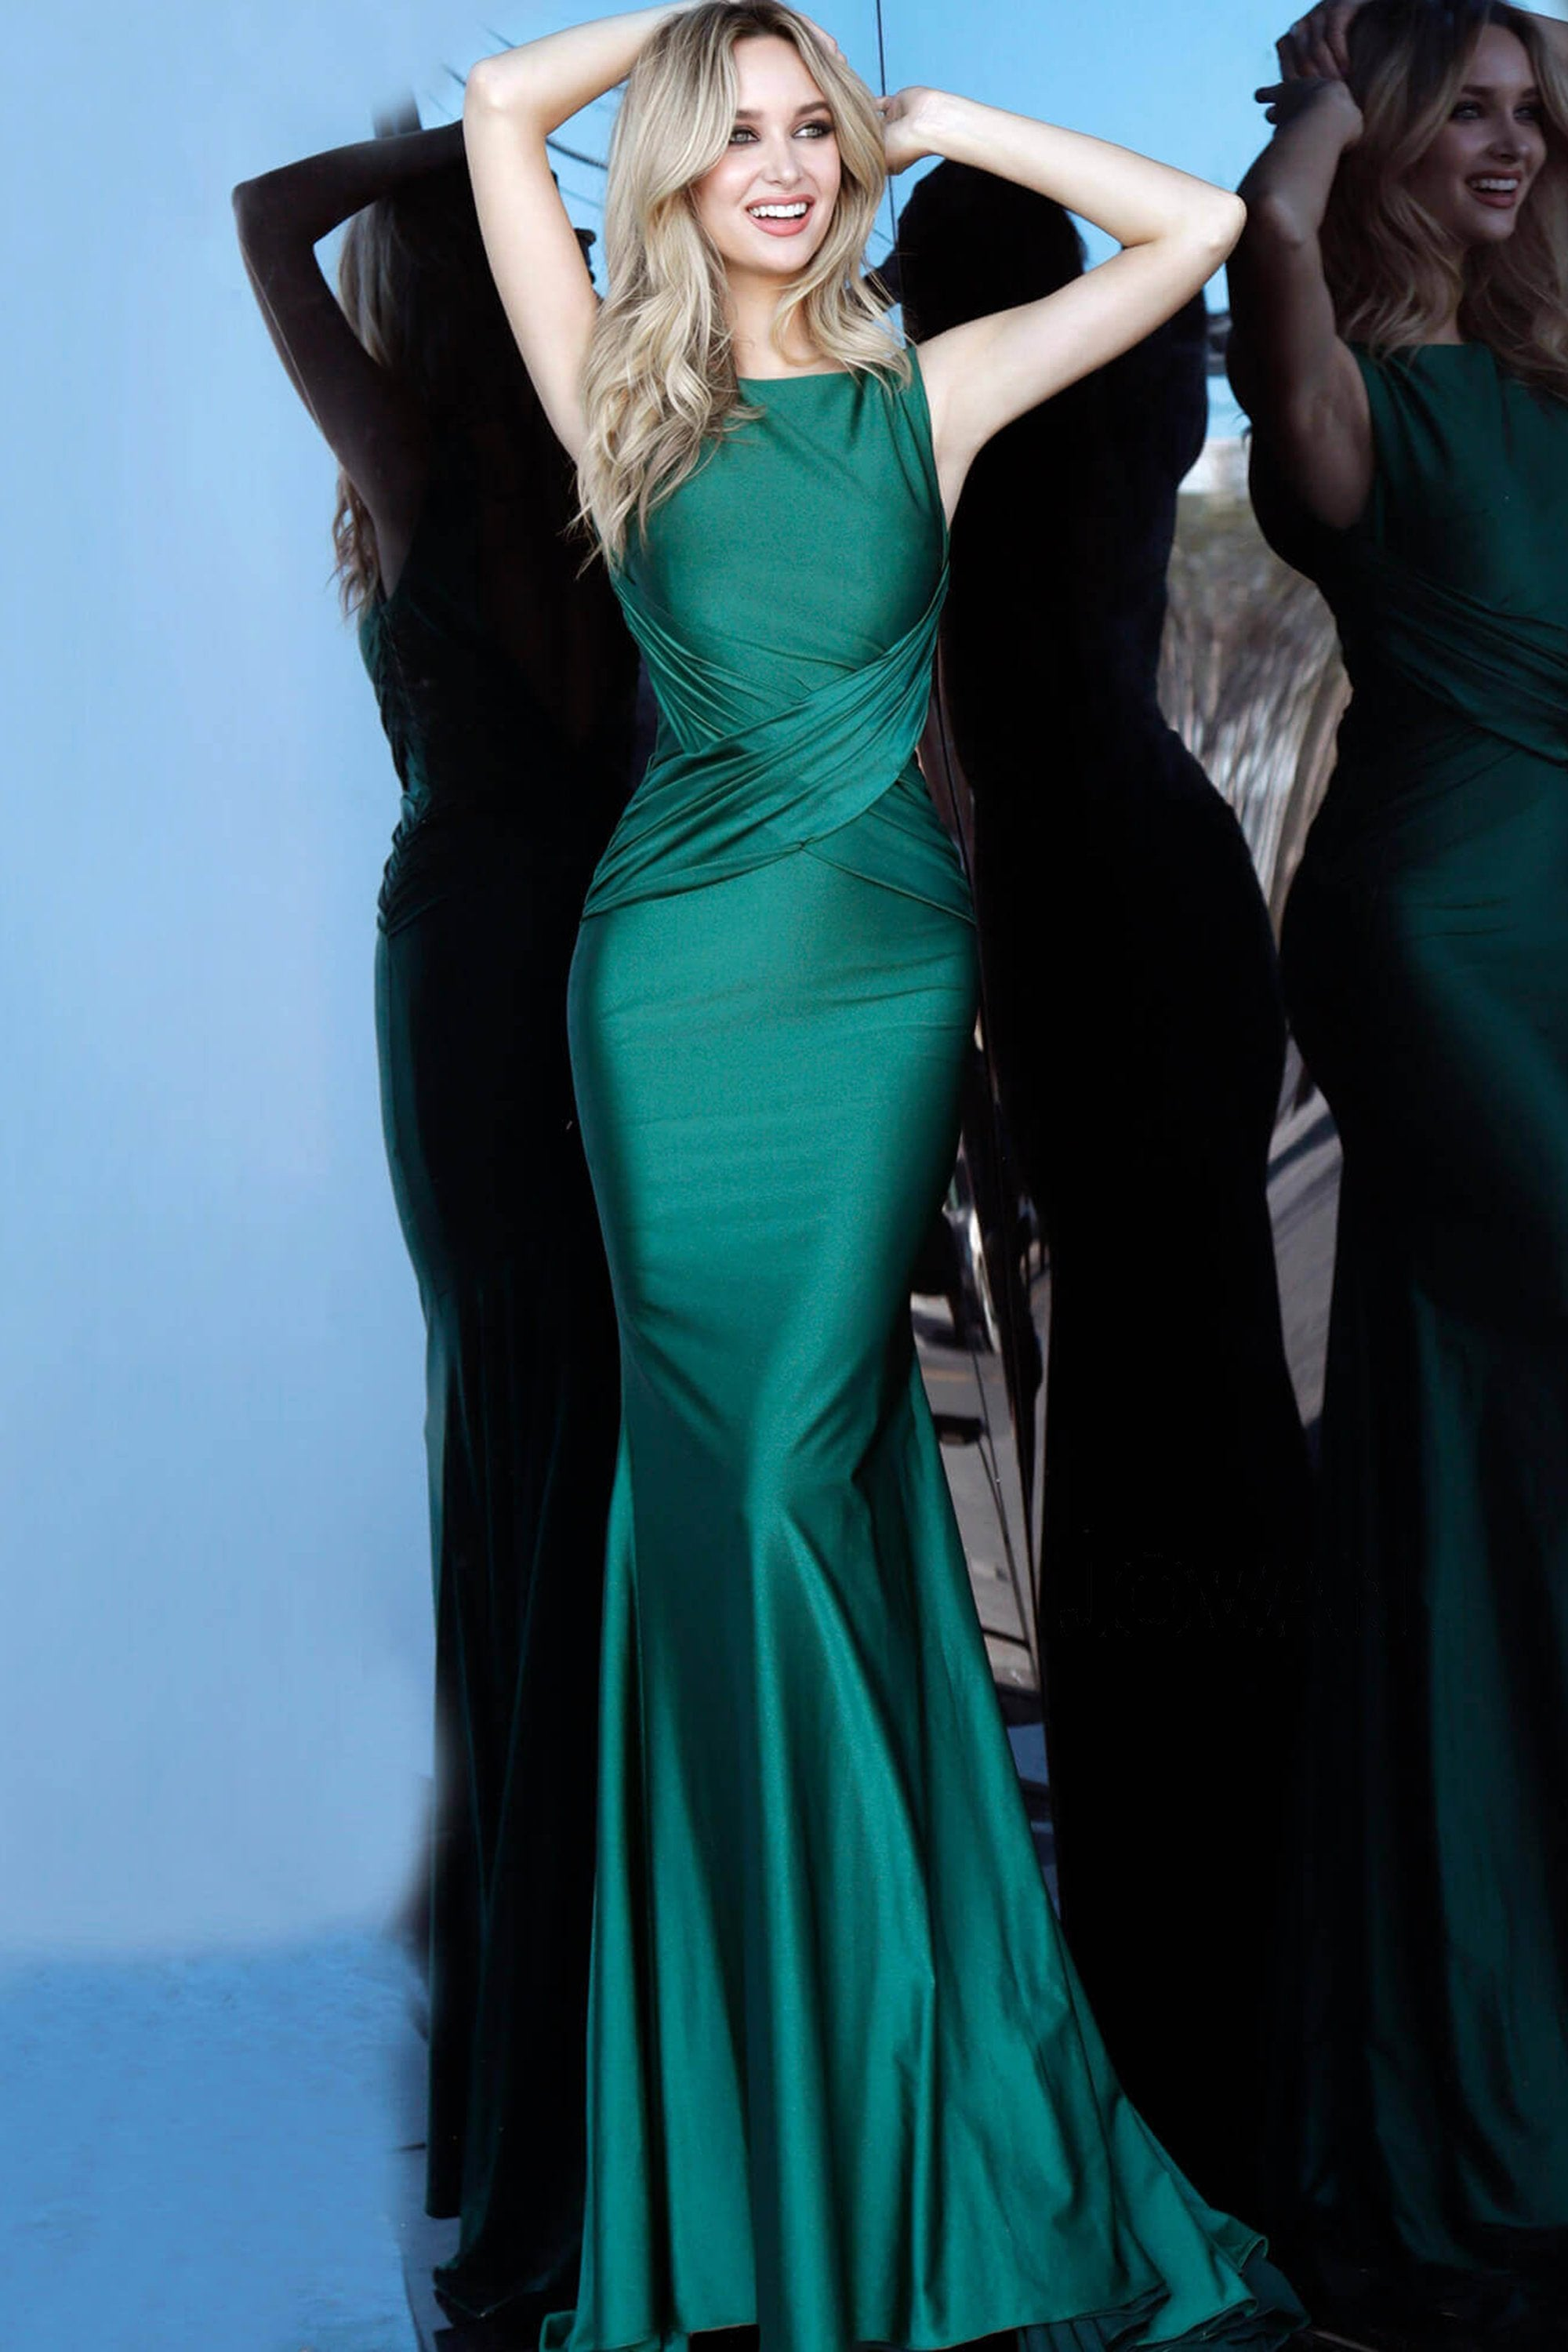 Jovani - 1016 Sleeveless Low V Back Ruched Mermaid Evening Dress In Green